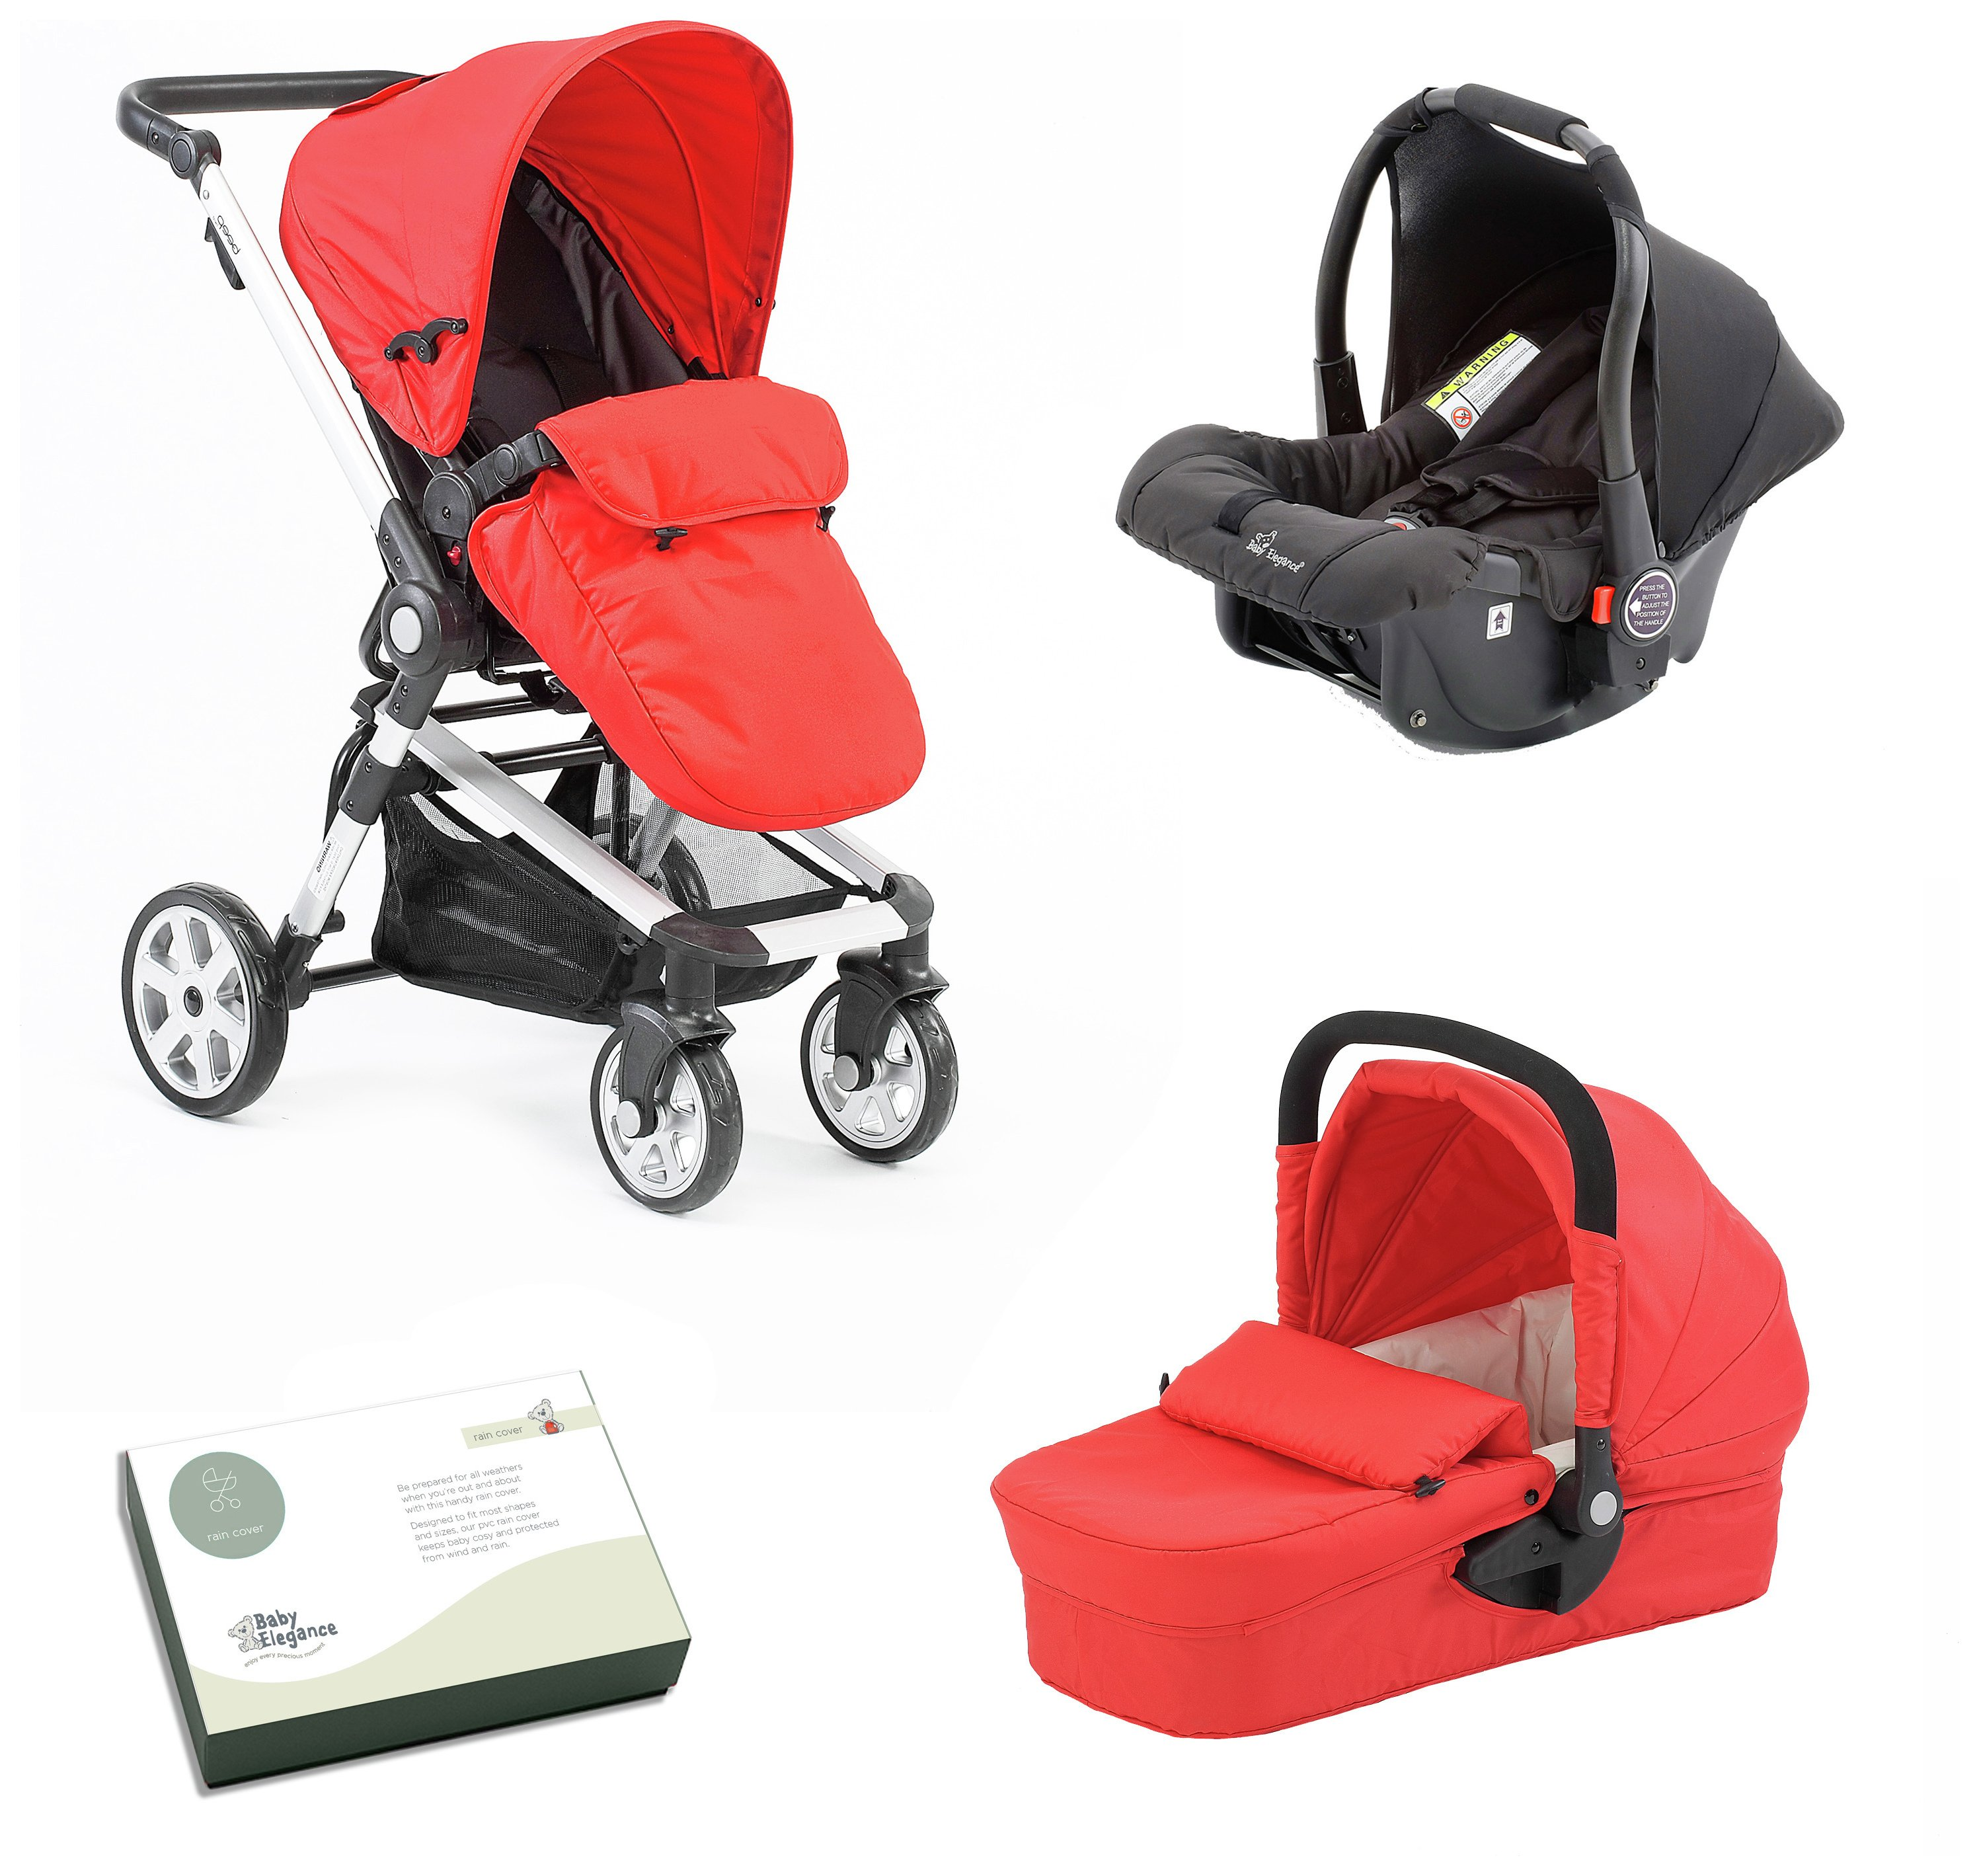 Image of Baby Elegance Beep Twist Travel System - Red.